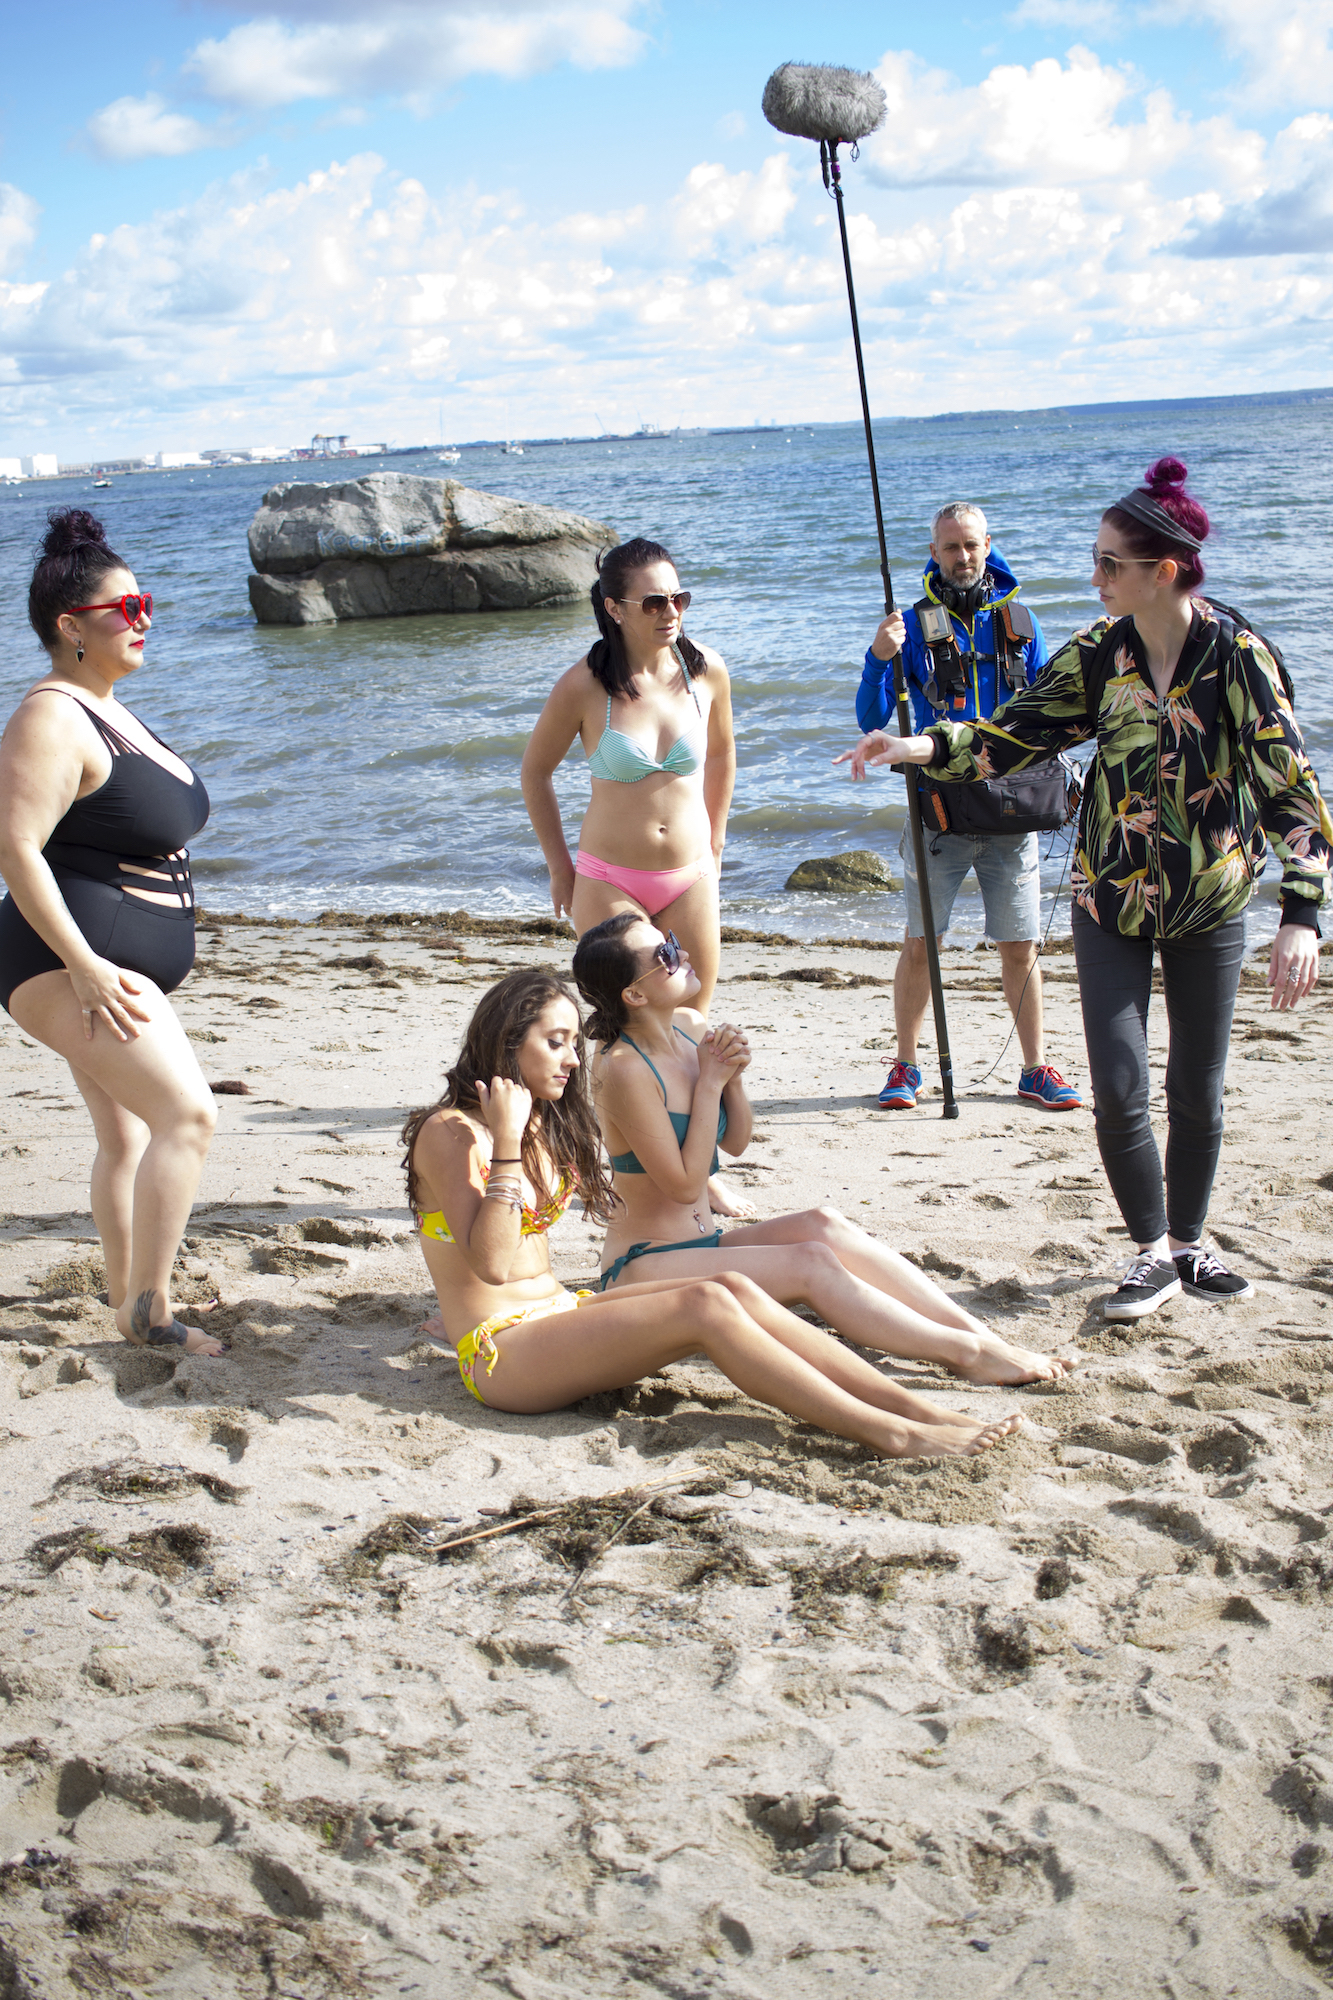 With Audio Djim Reynolds at back, Writer, Producer/Director Geena Matuson directs Actors Alessandra Grima, Catalina Snape, Acei Martin and Maya Simone on the set of Matuson's production of 'Fauxmercials' beach ads, September 2016.